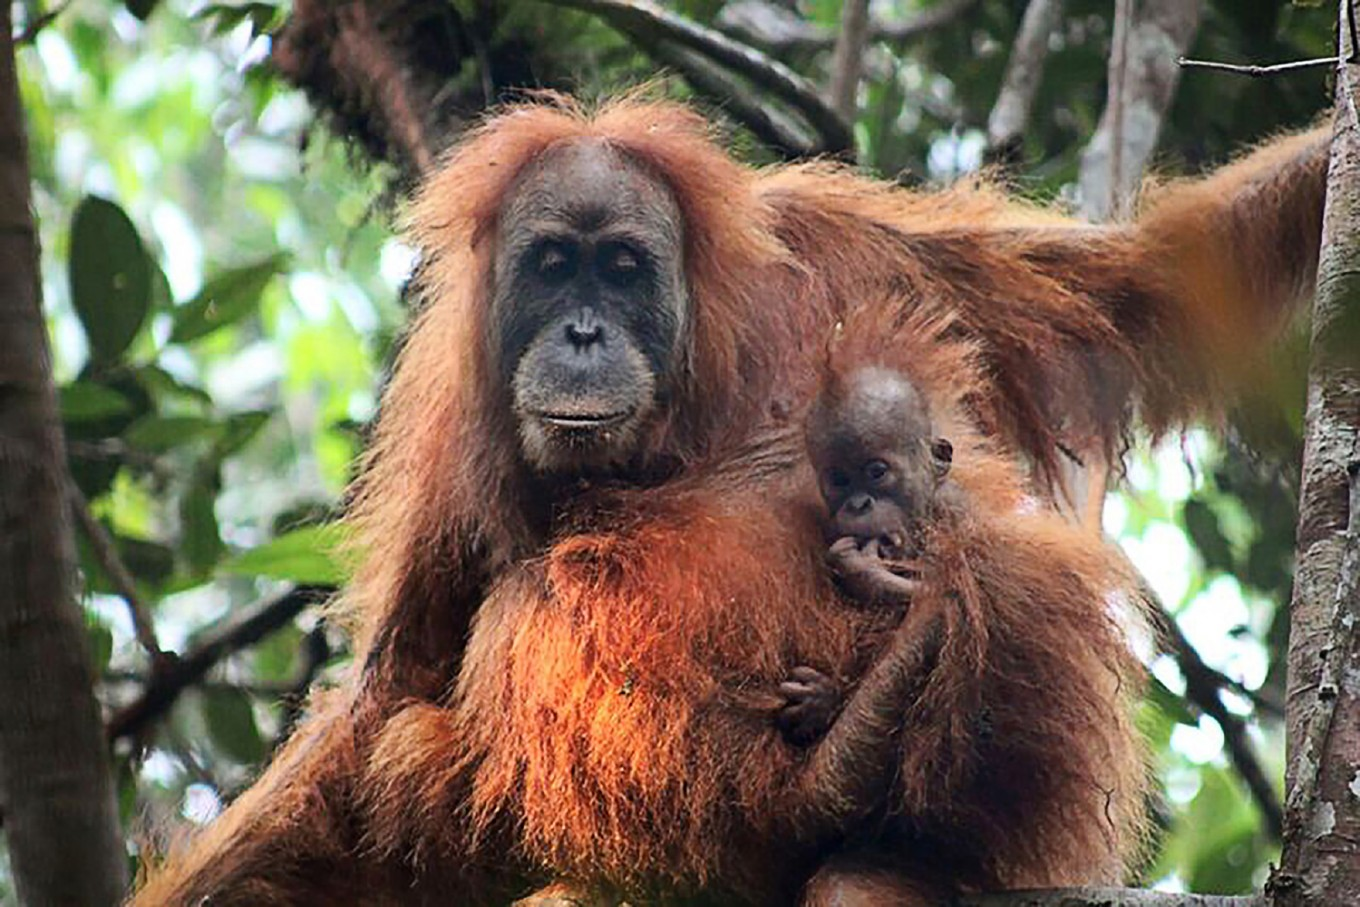 Newly discovered orangutan species is most endangered great ape: study